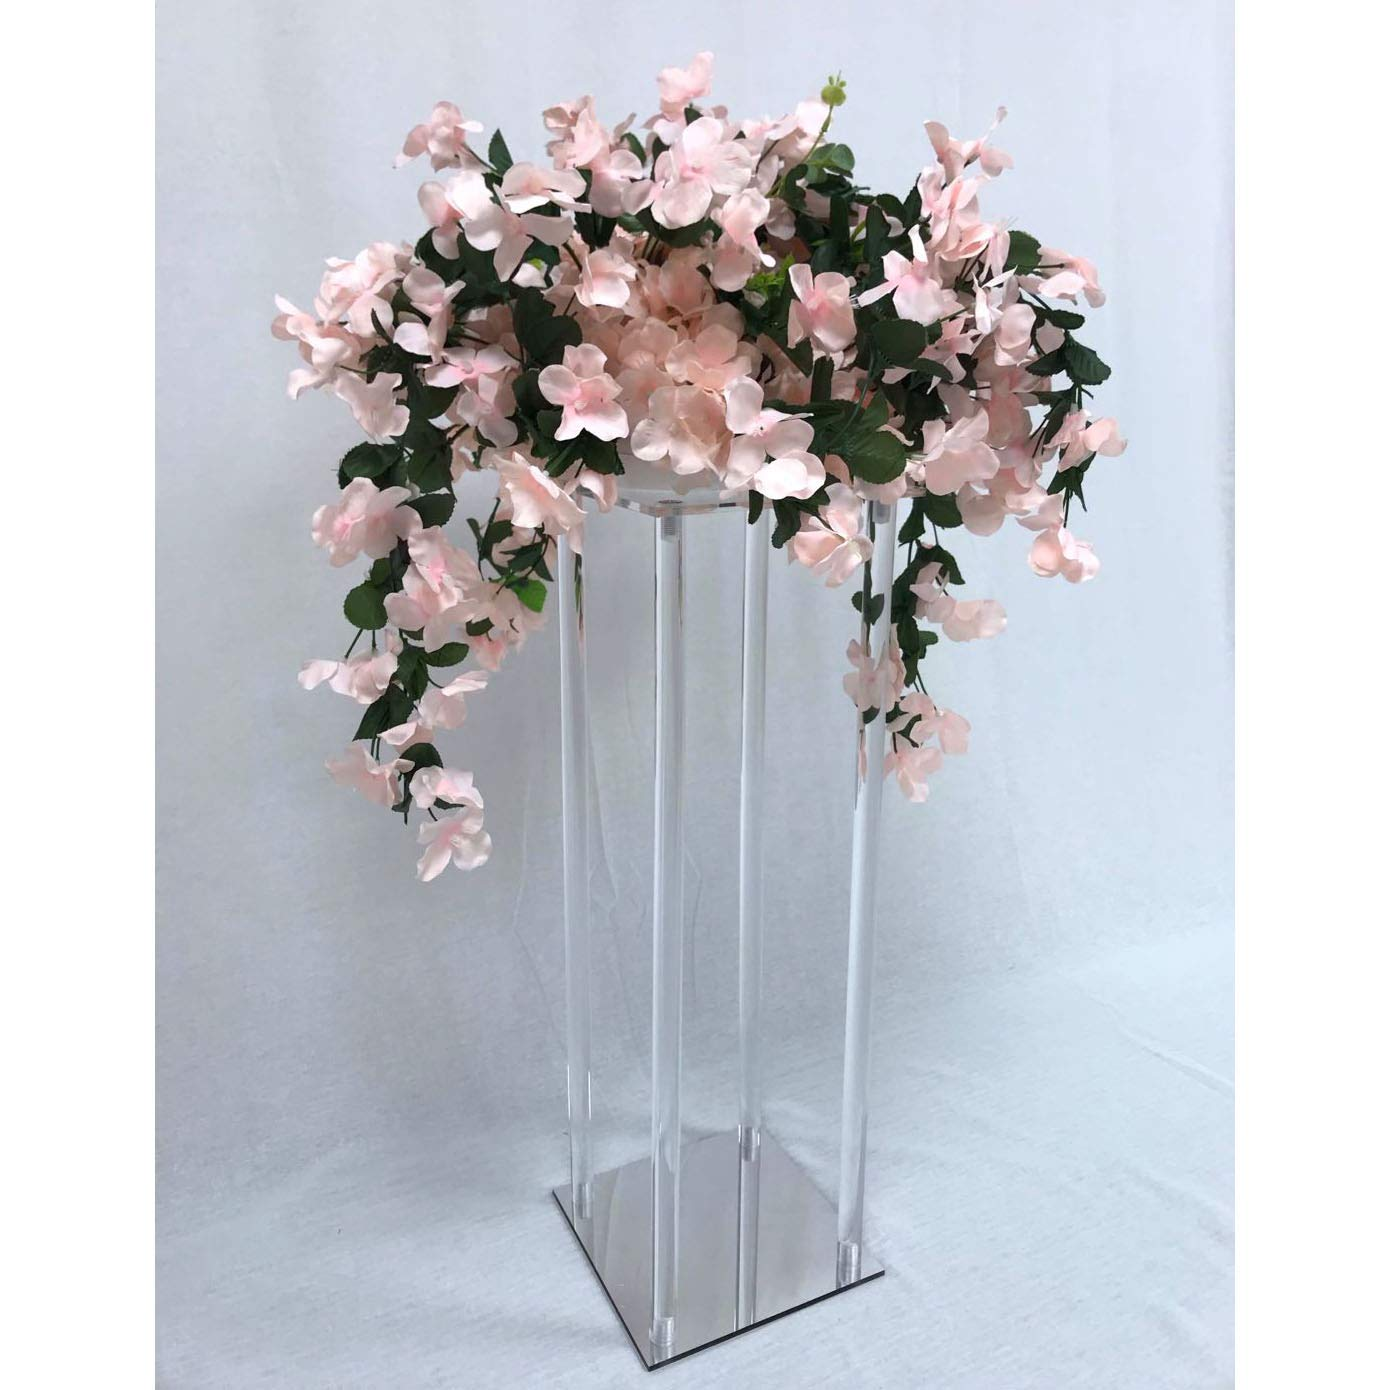 Everbon Set of 10 25.6 Inches Clear Acrylic Flower Stand with Mirror Effect Wedding Floral Vase Crystal Columns Table Centerpiece Pillars Marriage Decoration